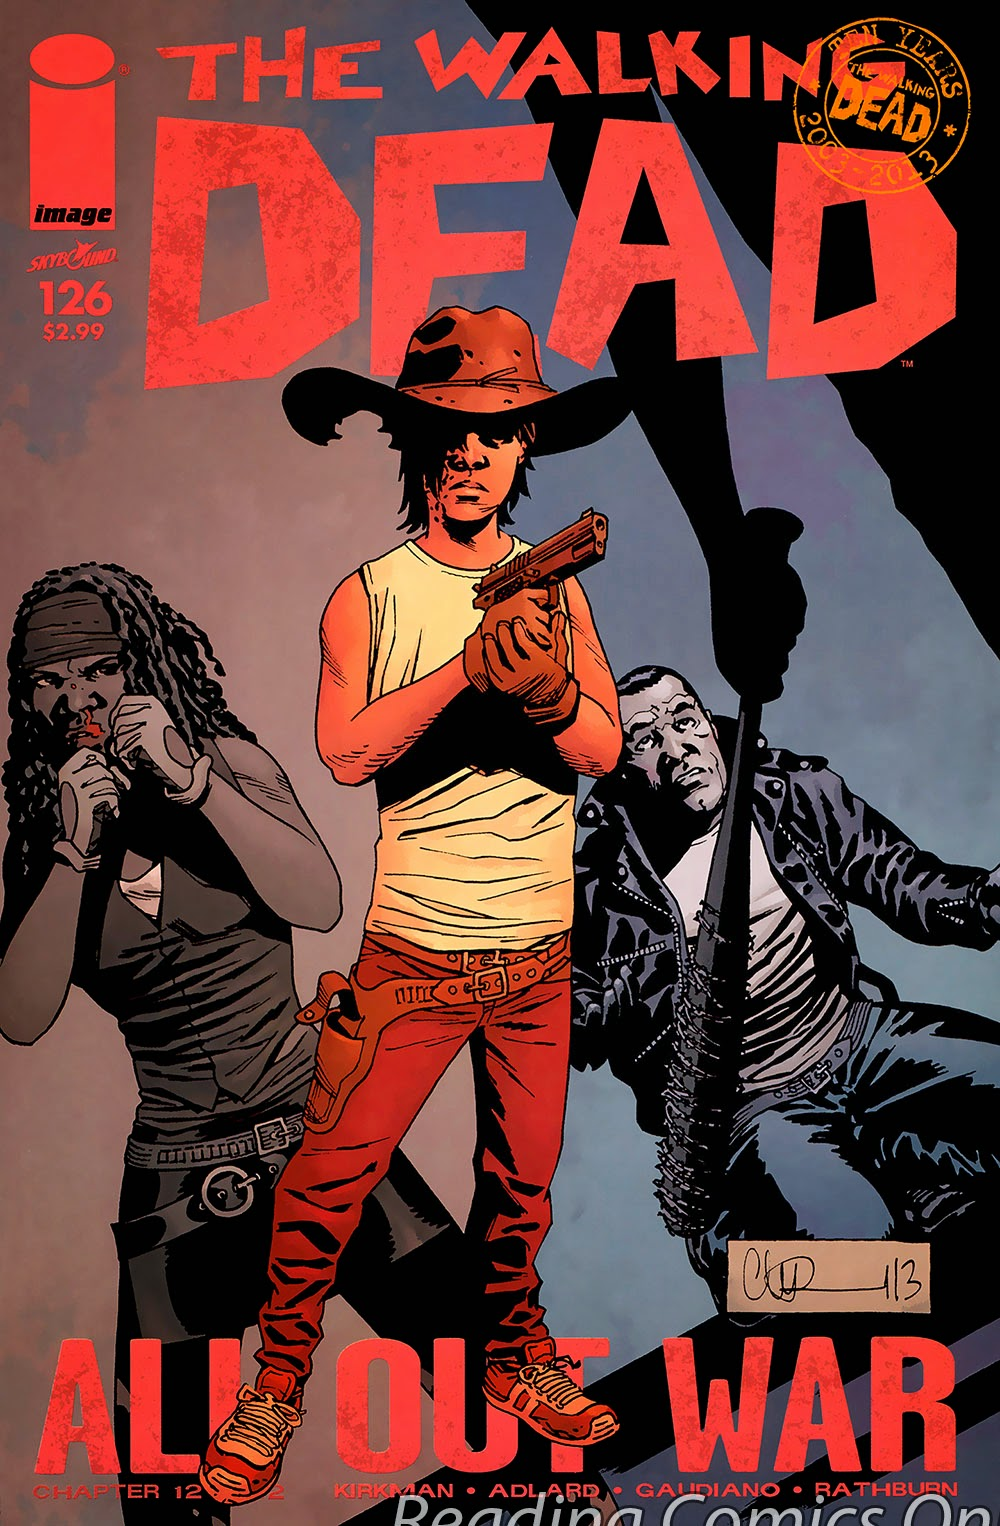 The Walking Dead | Viewcomic reading comics online for free 2019